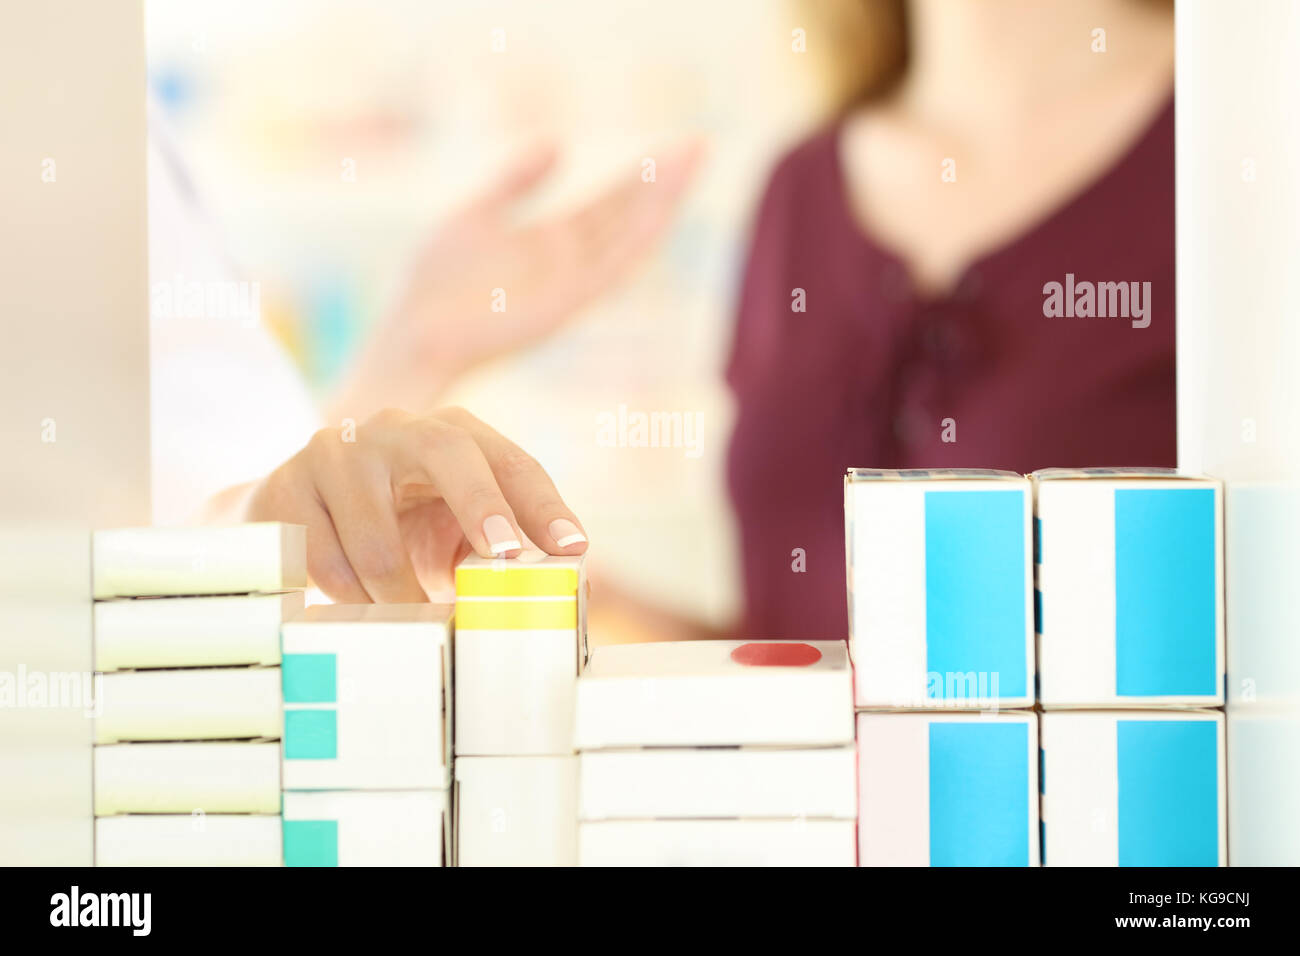 Close up of a pharmacist hands working attending to a customer in a pharmacy interior - Stock Image